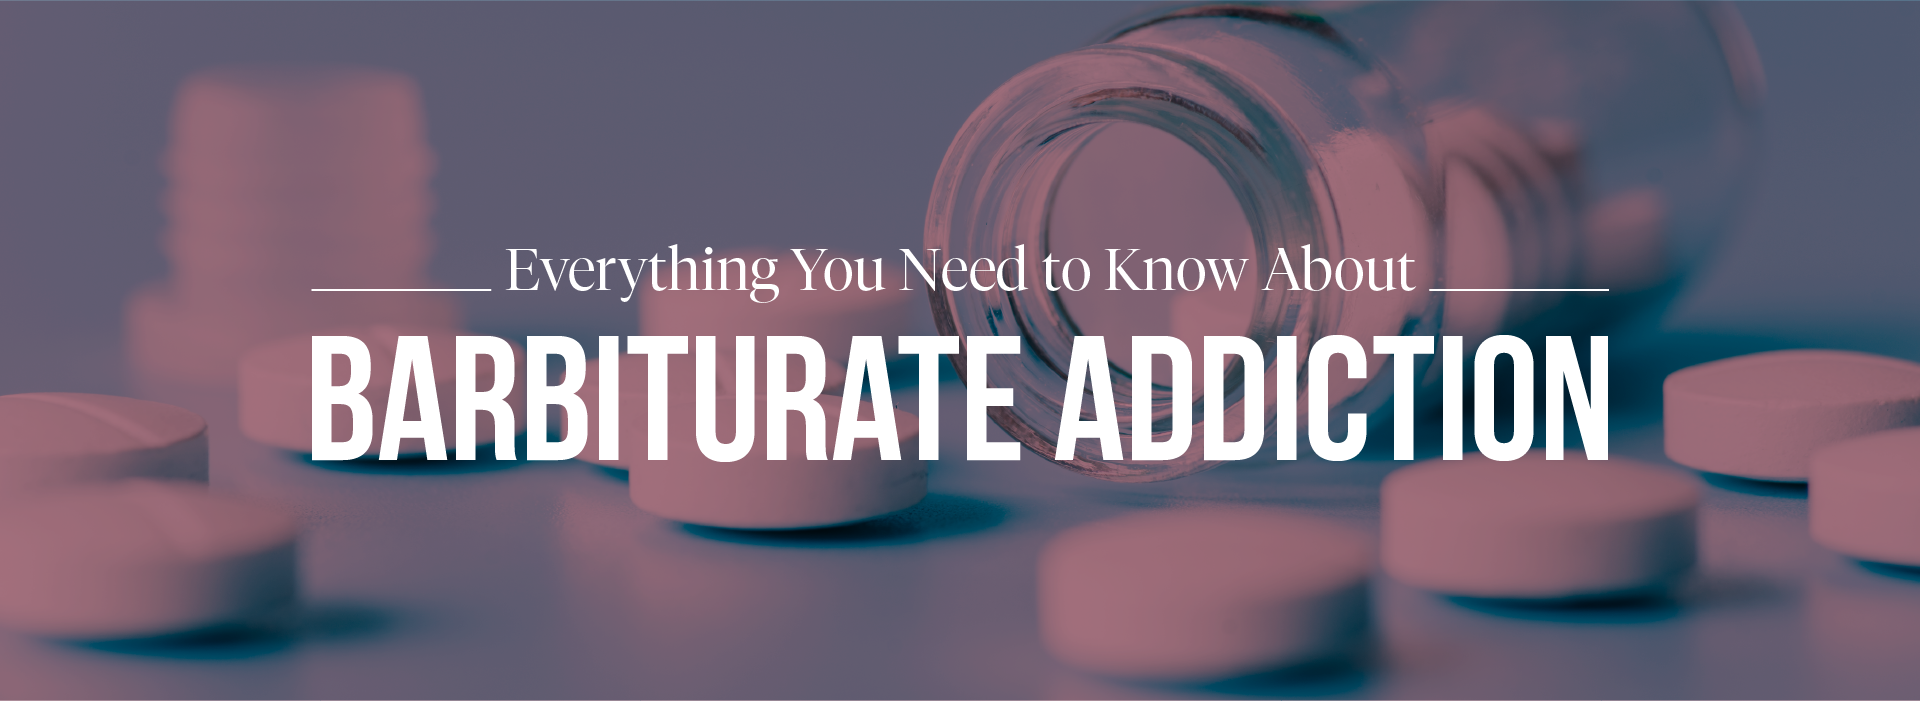 Everything You Need to Know About Barbiturate Addiction